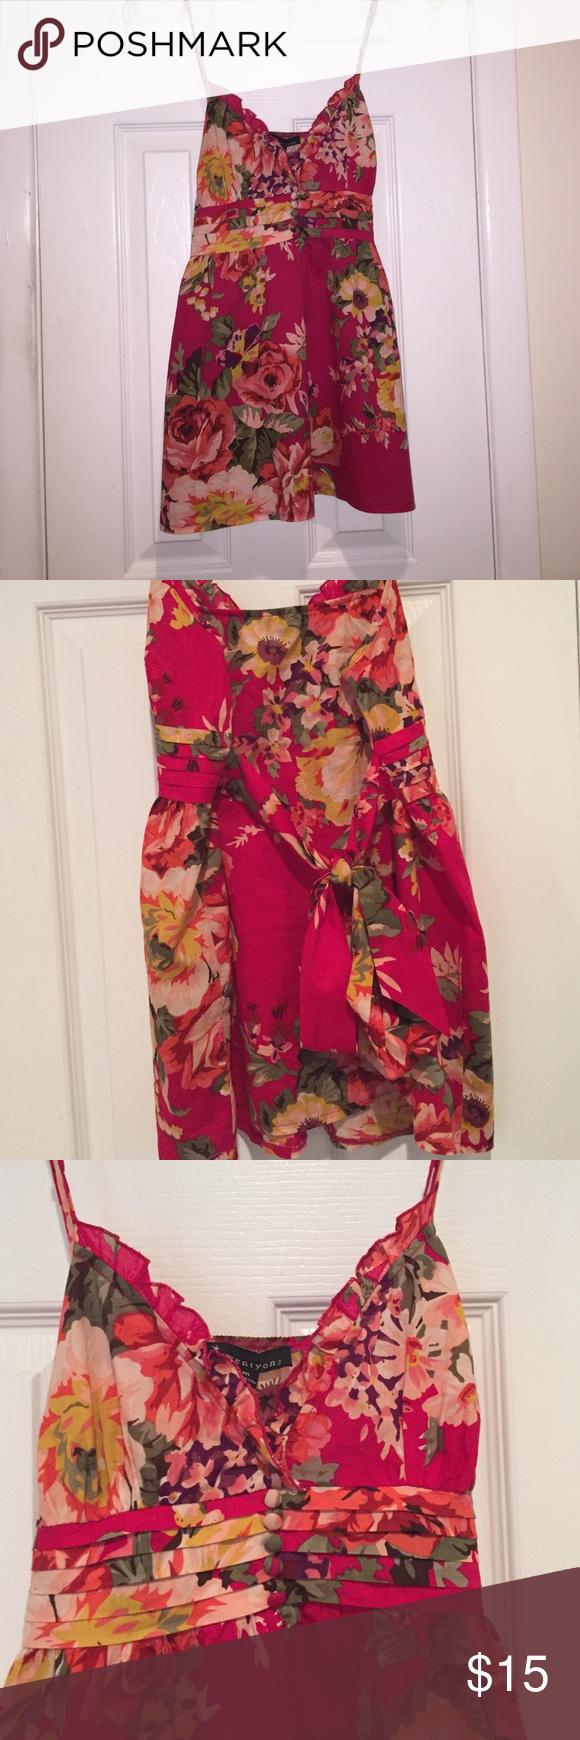 Floral Summer Blouse Adjustable straps and ties in back. Very pretty bright colors! Medium Forever 21 Tops Crop Tops